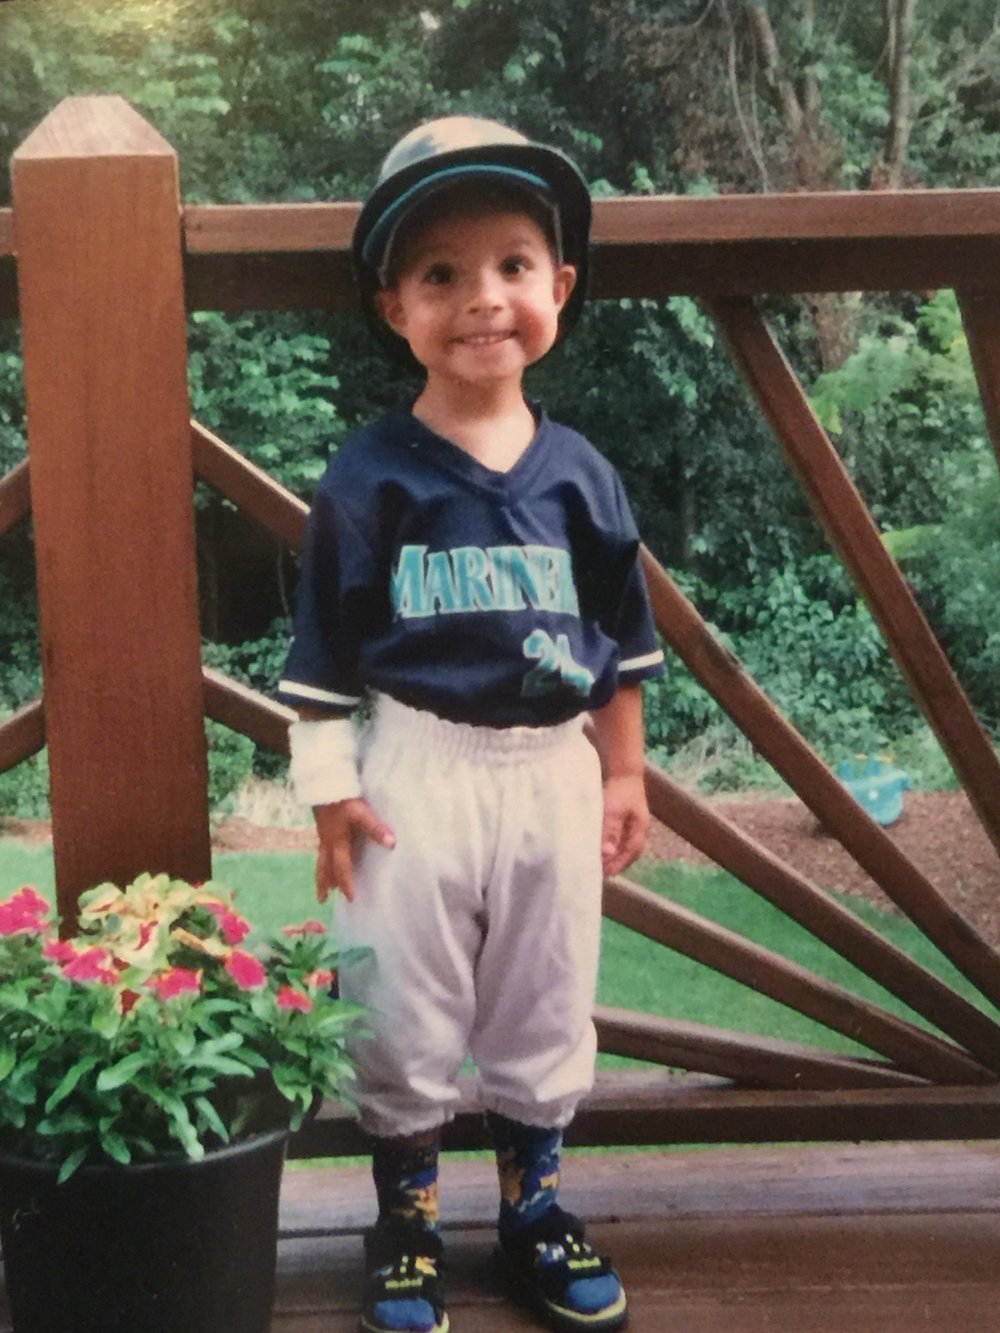 little ball player.jpg